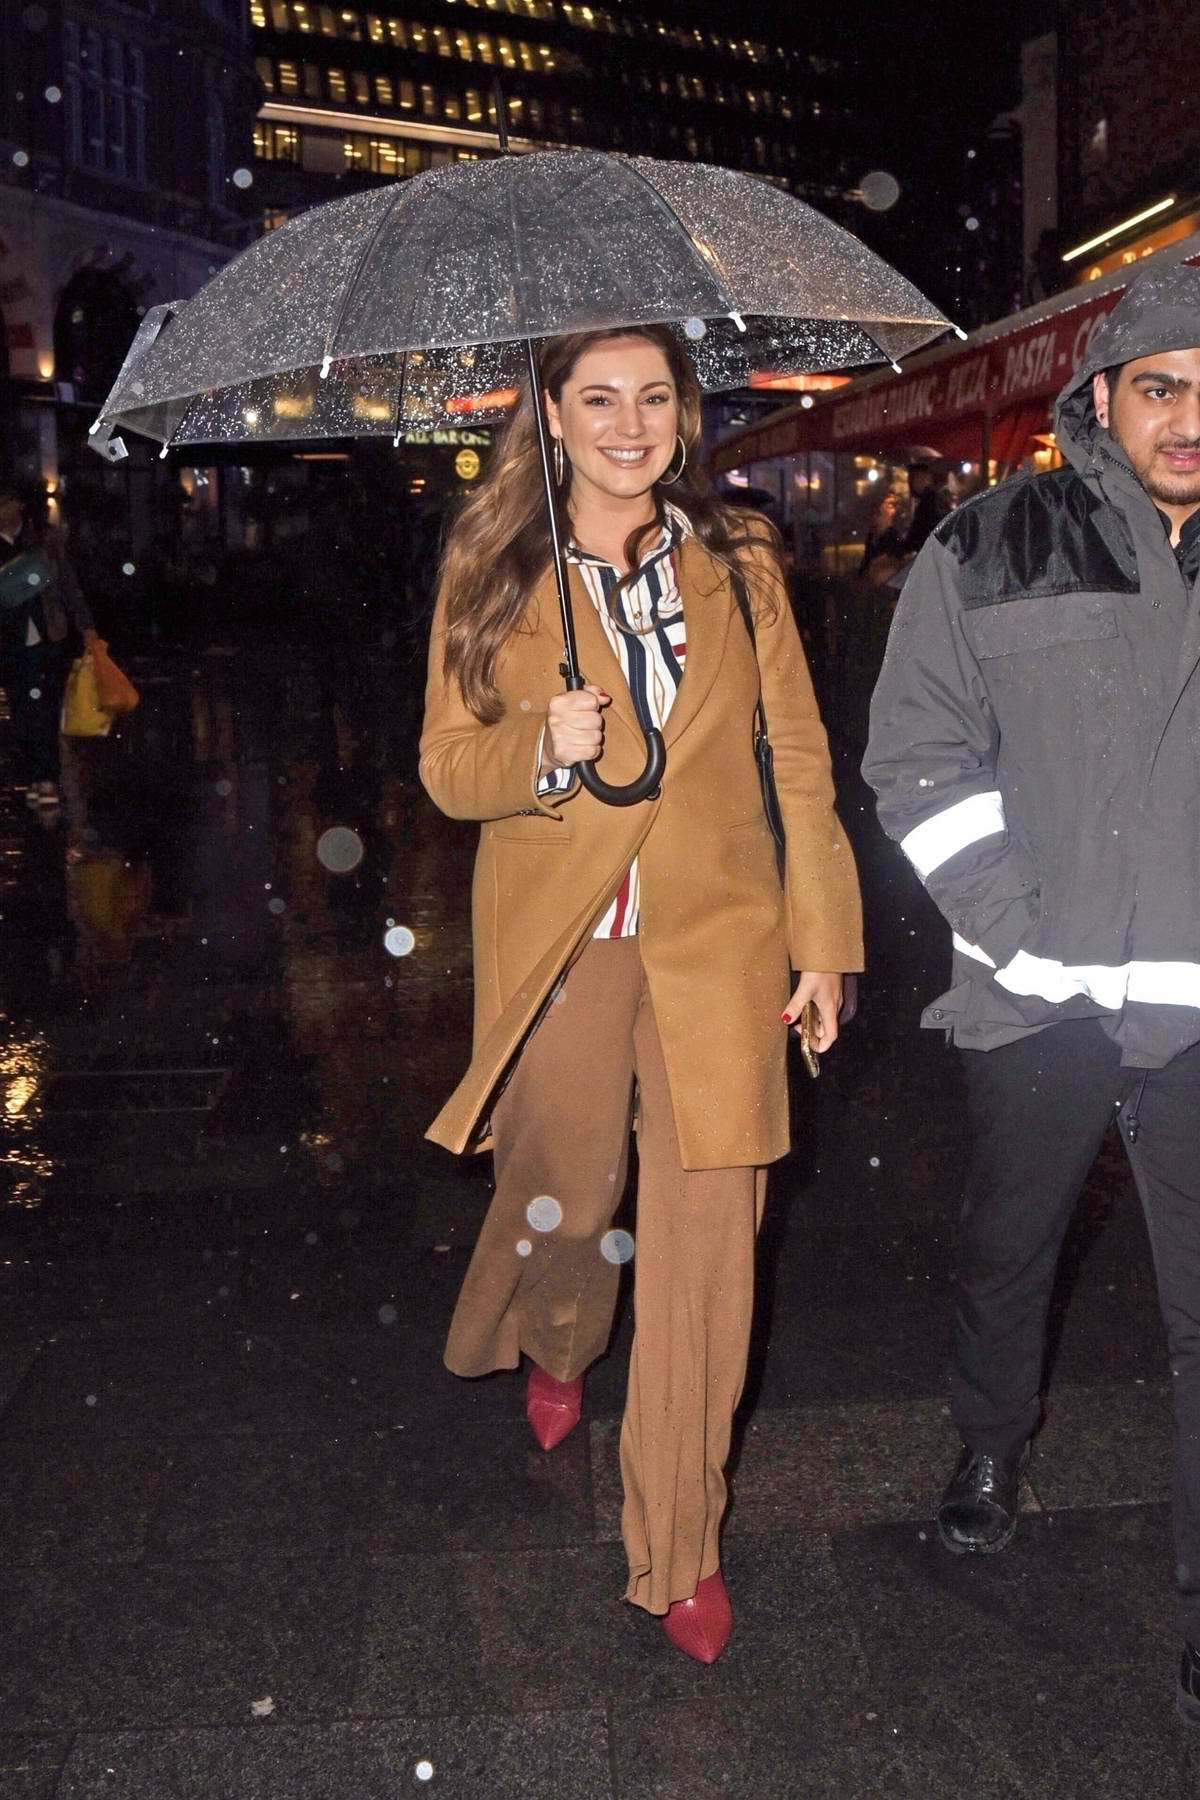 Kelly Brook is all smiles as she steps out in the rain holding a clear umbrella while leaving Global Radio studios in London, UK